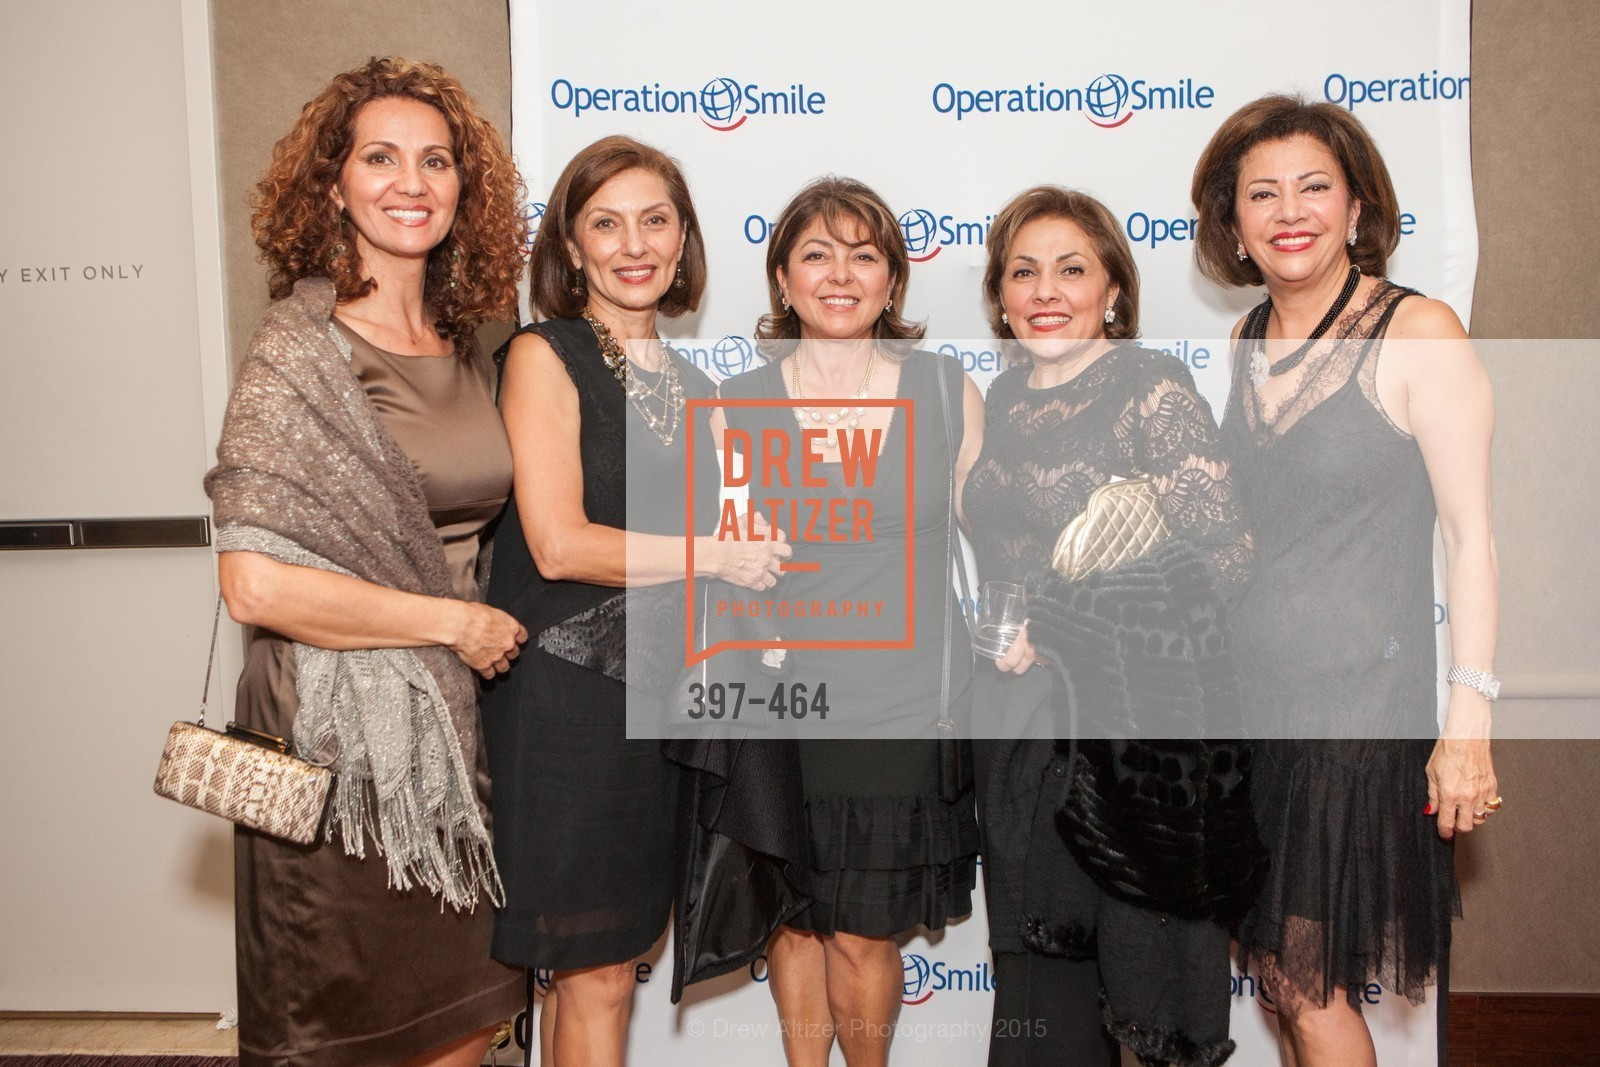 Mozdeh Saleh, Susan Rajabi, Salma Khayami, Operation Smile Presents THE SAN FRANCISCO 2015 SMILE GALA, InterContinental Hotel, November 7th, 2015,Drew Altizer, Drew Altizer Photography, full-service agency, private events, San Francisco photographer, photographer california